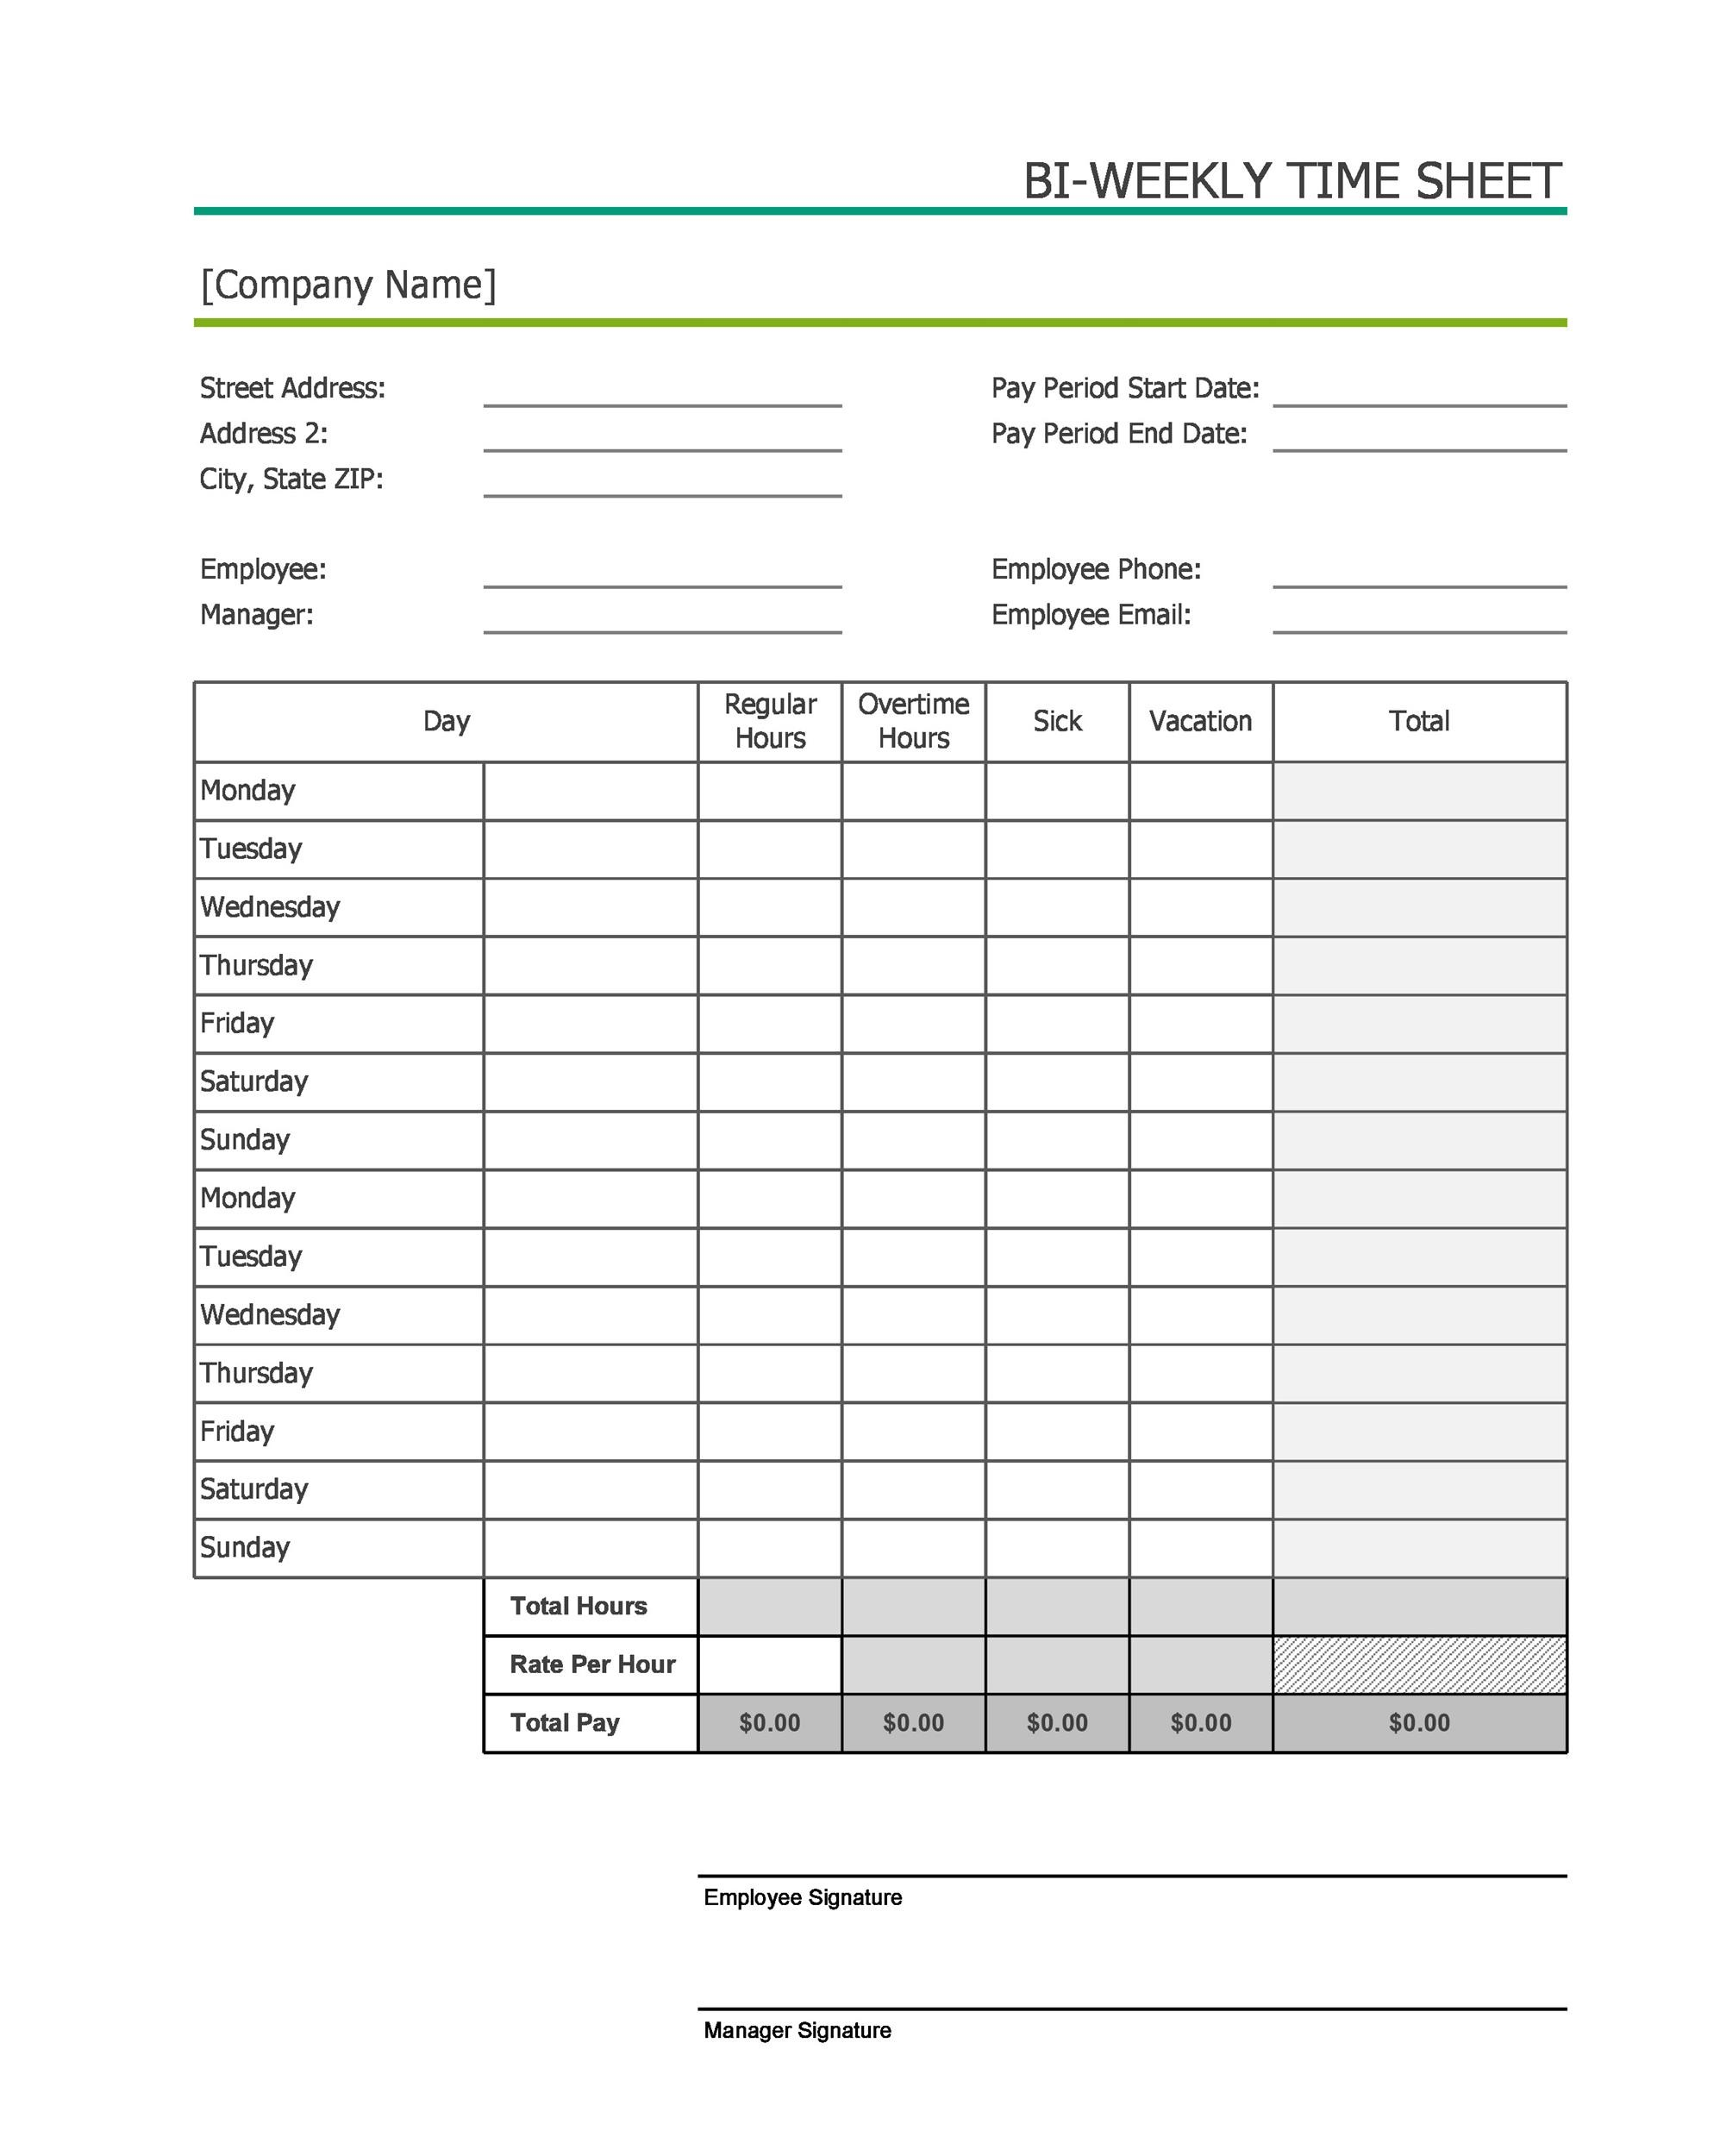 employee hours sheet